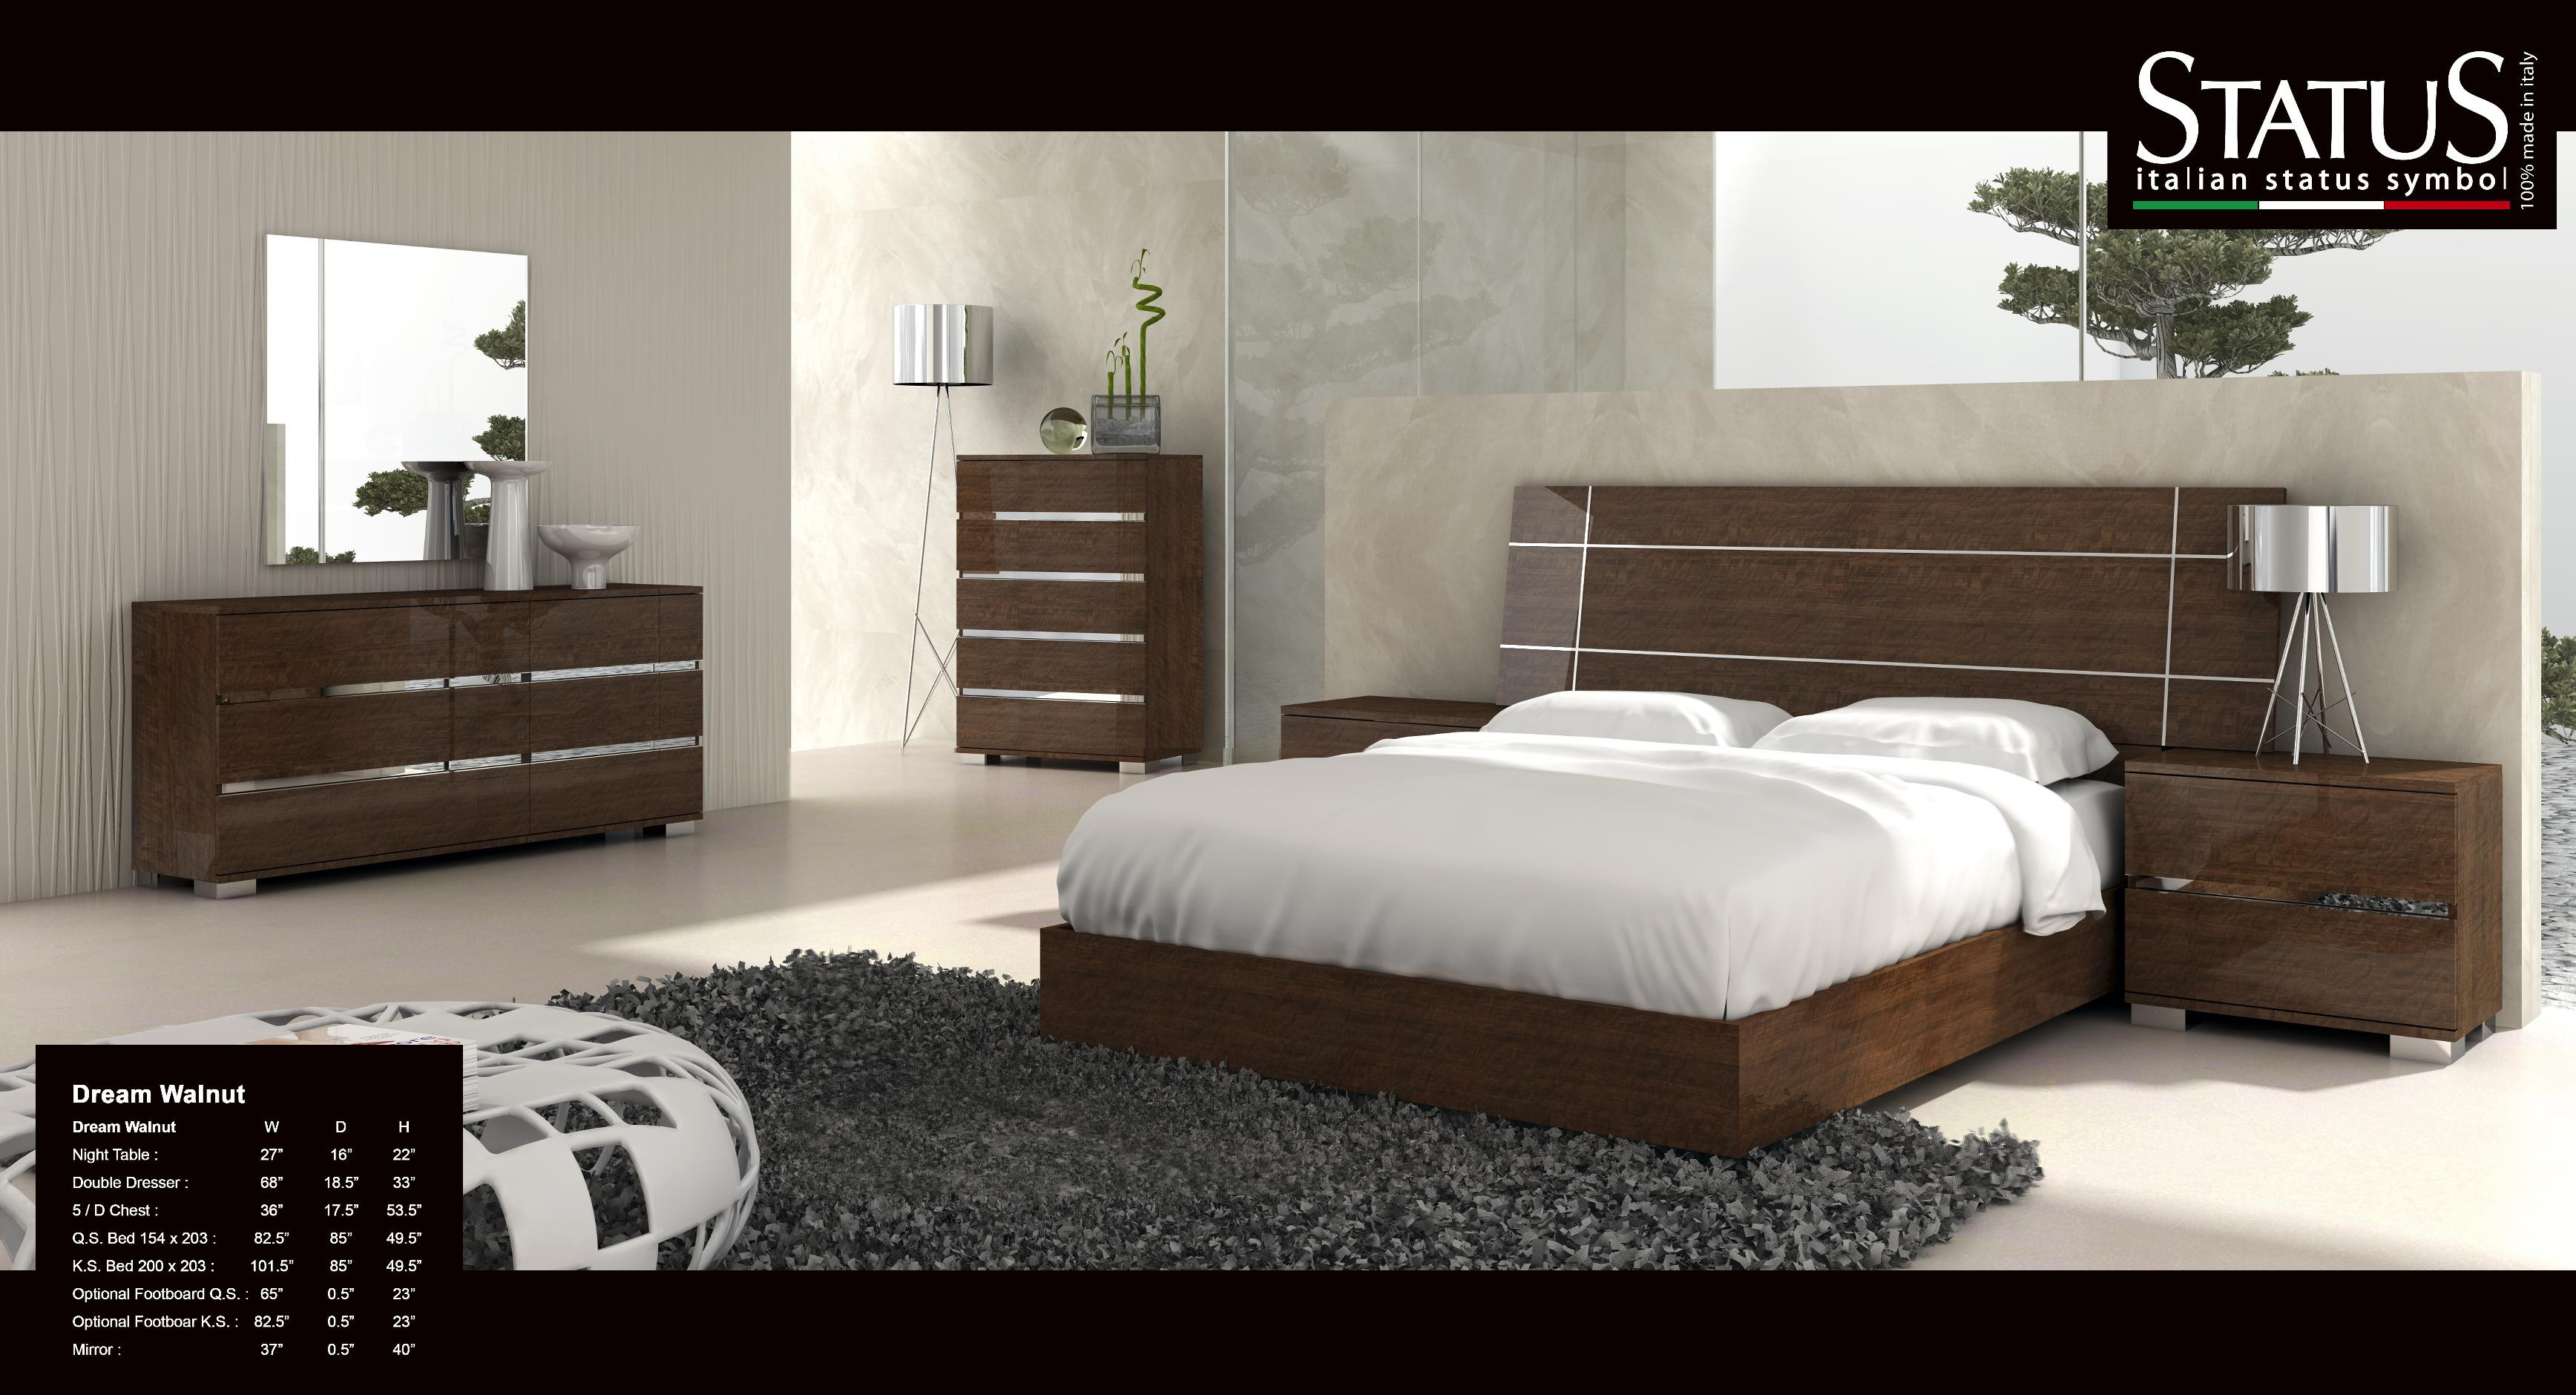 Best ideas about King Size Bedroom Sets . Save or Pin Dream King Size Modern Design Bedroom Set Walnut 5 PC Bed Now.